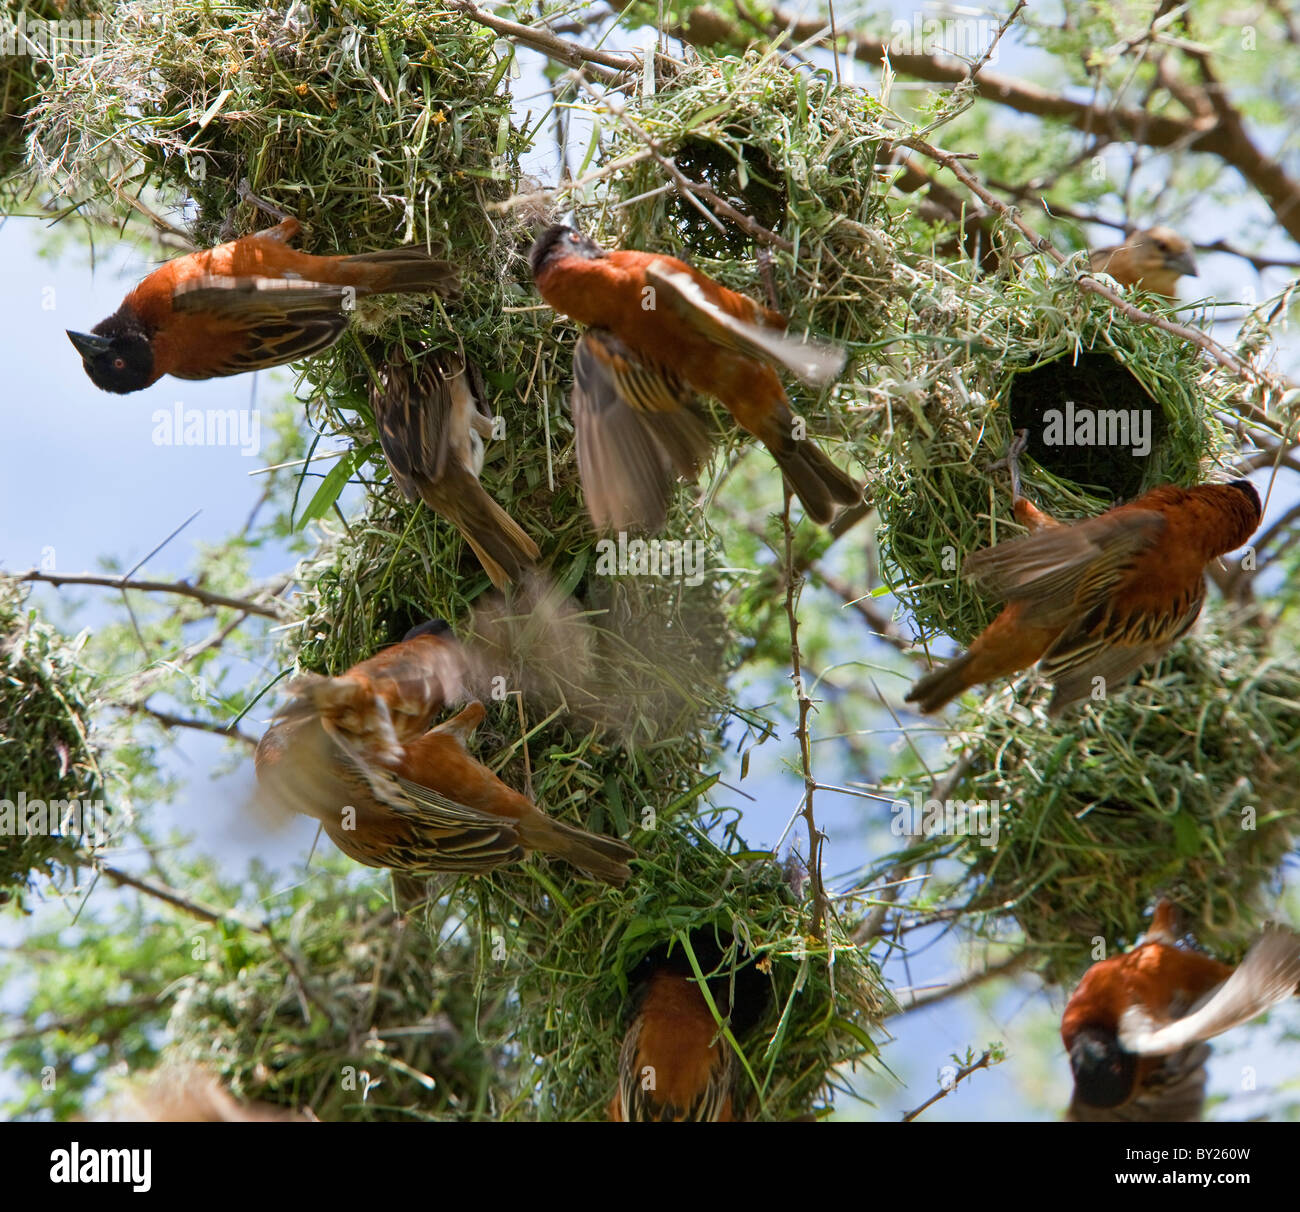 Chesnut weavers build their nests in close proximity to each other in an acacia tree on the plains of Tsavo West - Stock Image